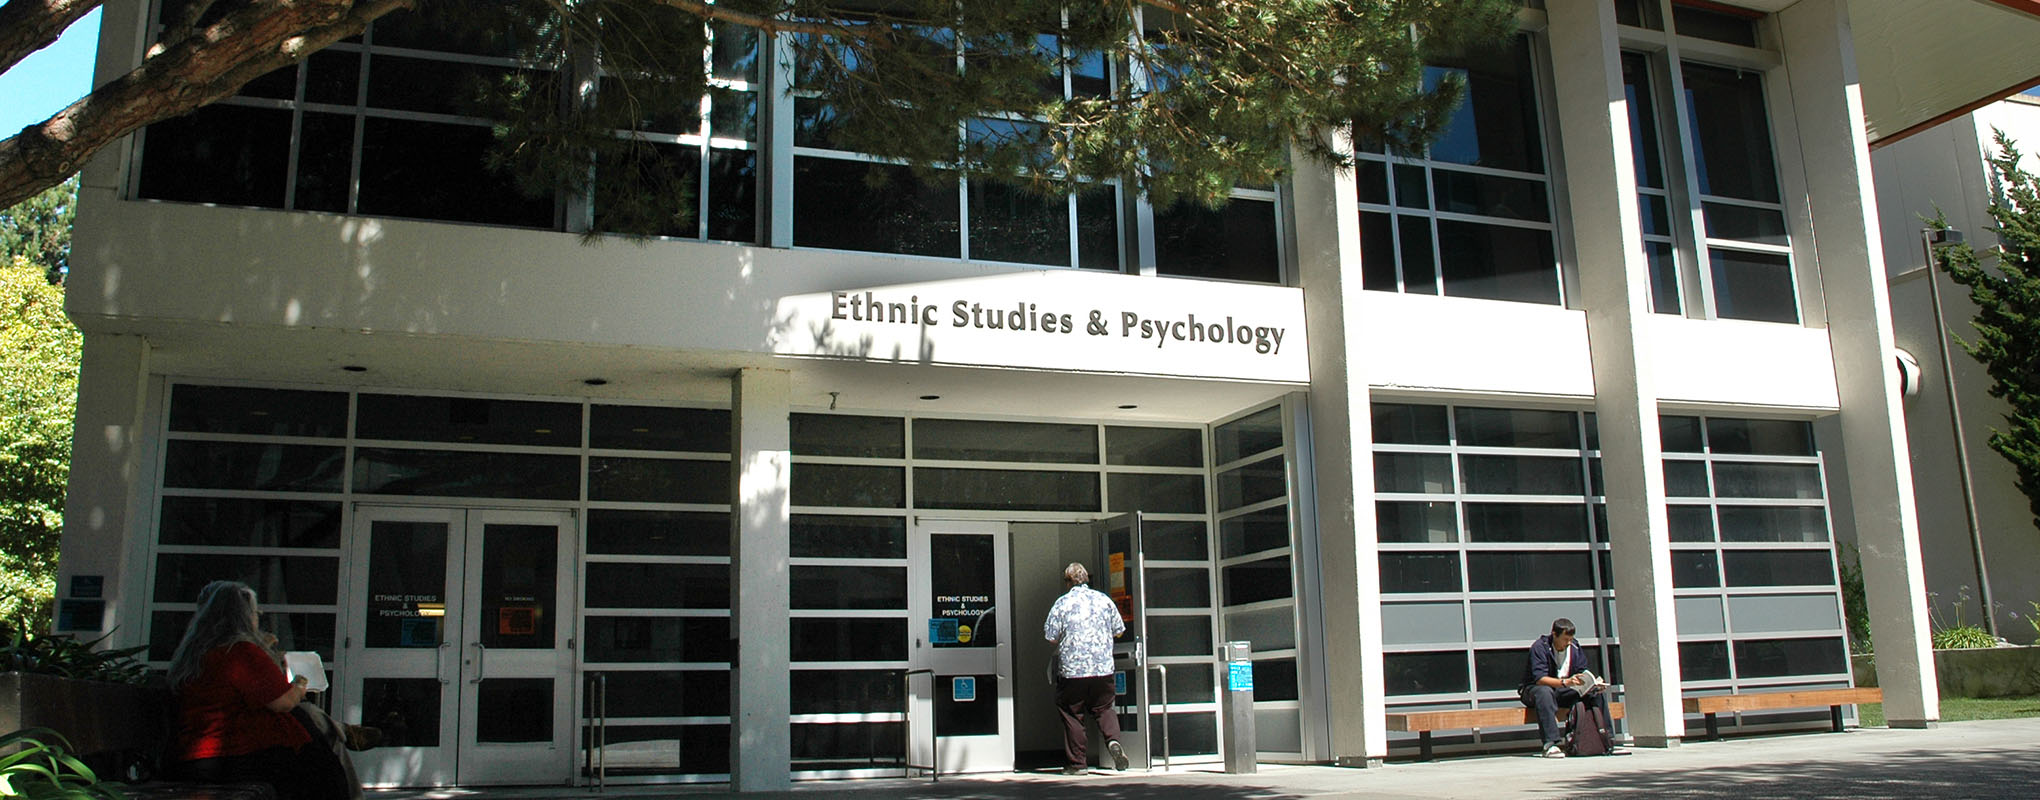 The Ethnic Studies building at San Francisco State University